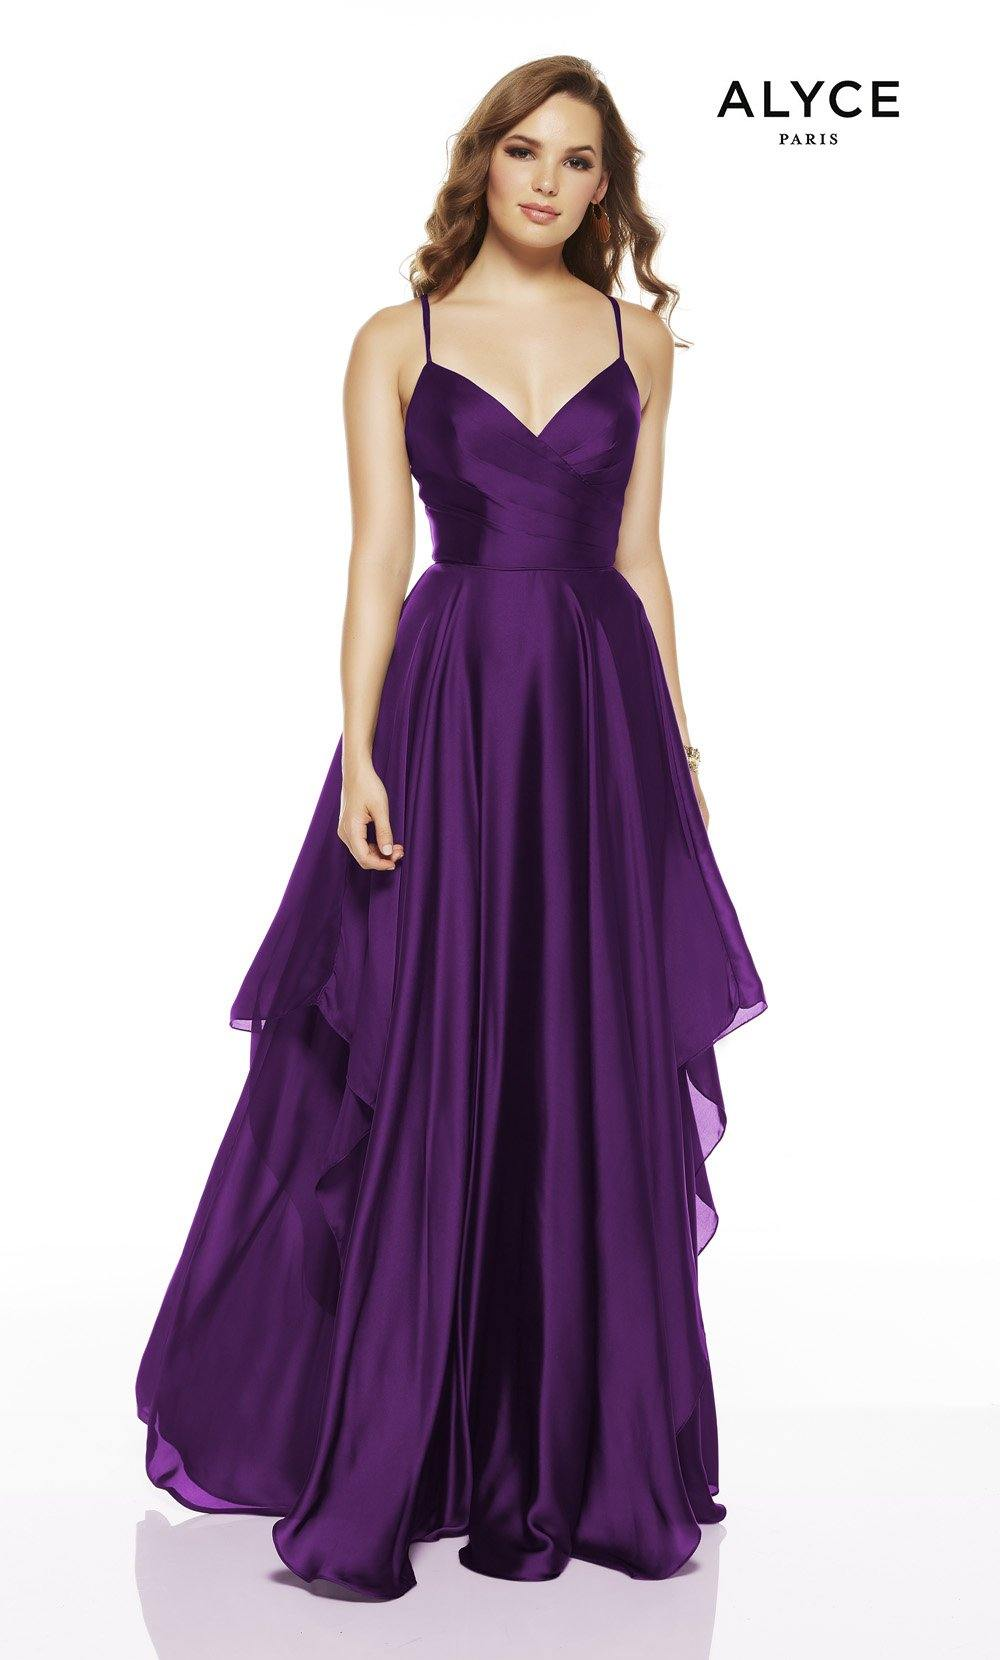 Amethyst flowy wedding guest dress with a V-neckline